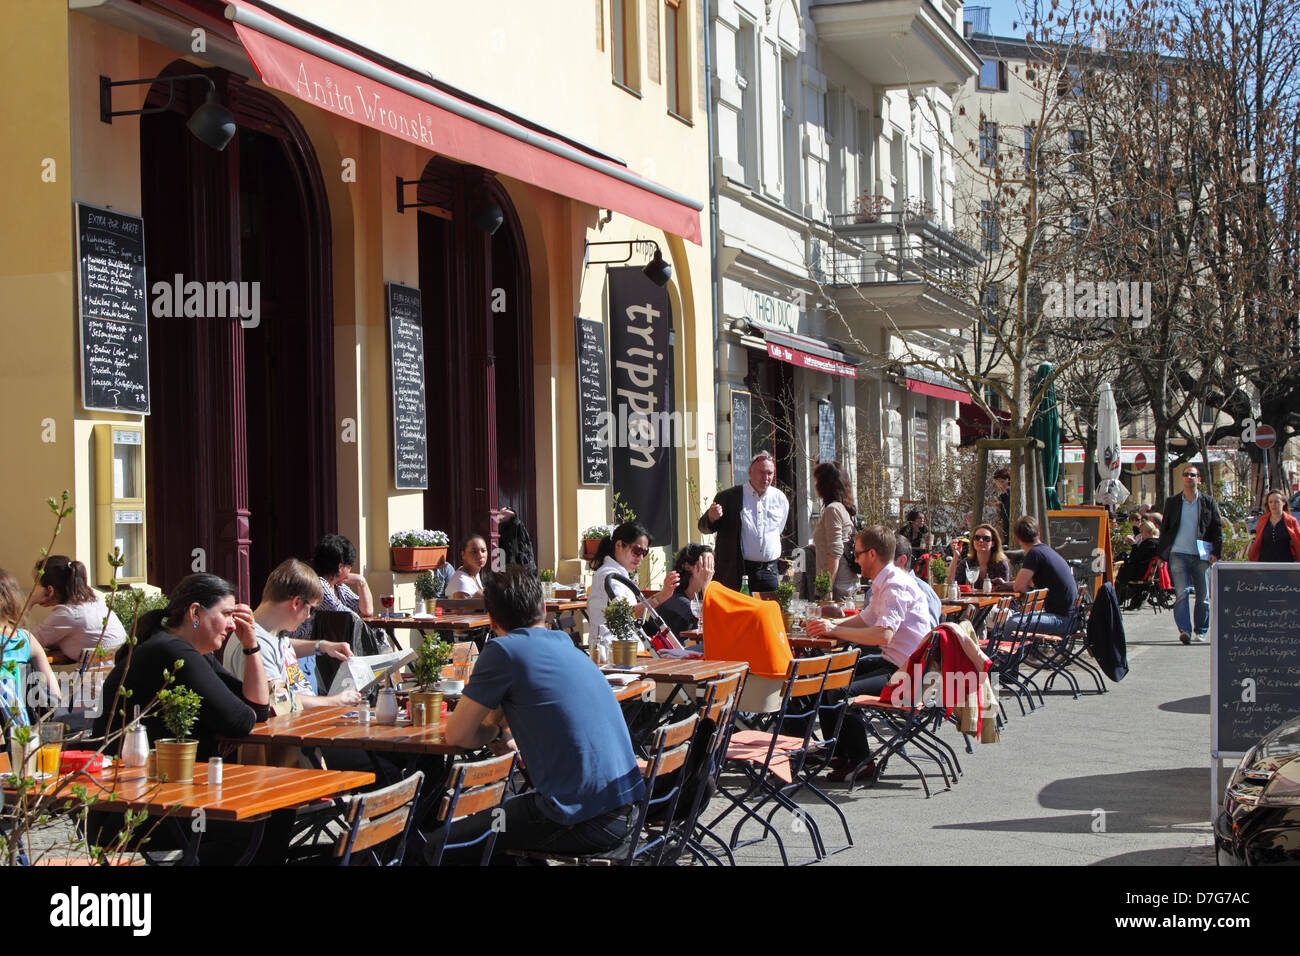 berlin prenzlauer berg cafe knaakstr rykestr stock photo royalty free image 56290708 alamy. Black Bedroom Furniture Sets. Home Design Ideas